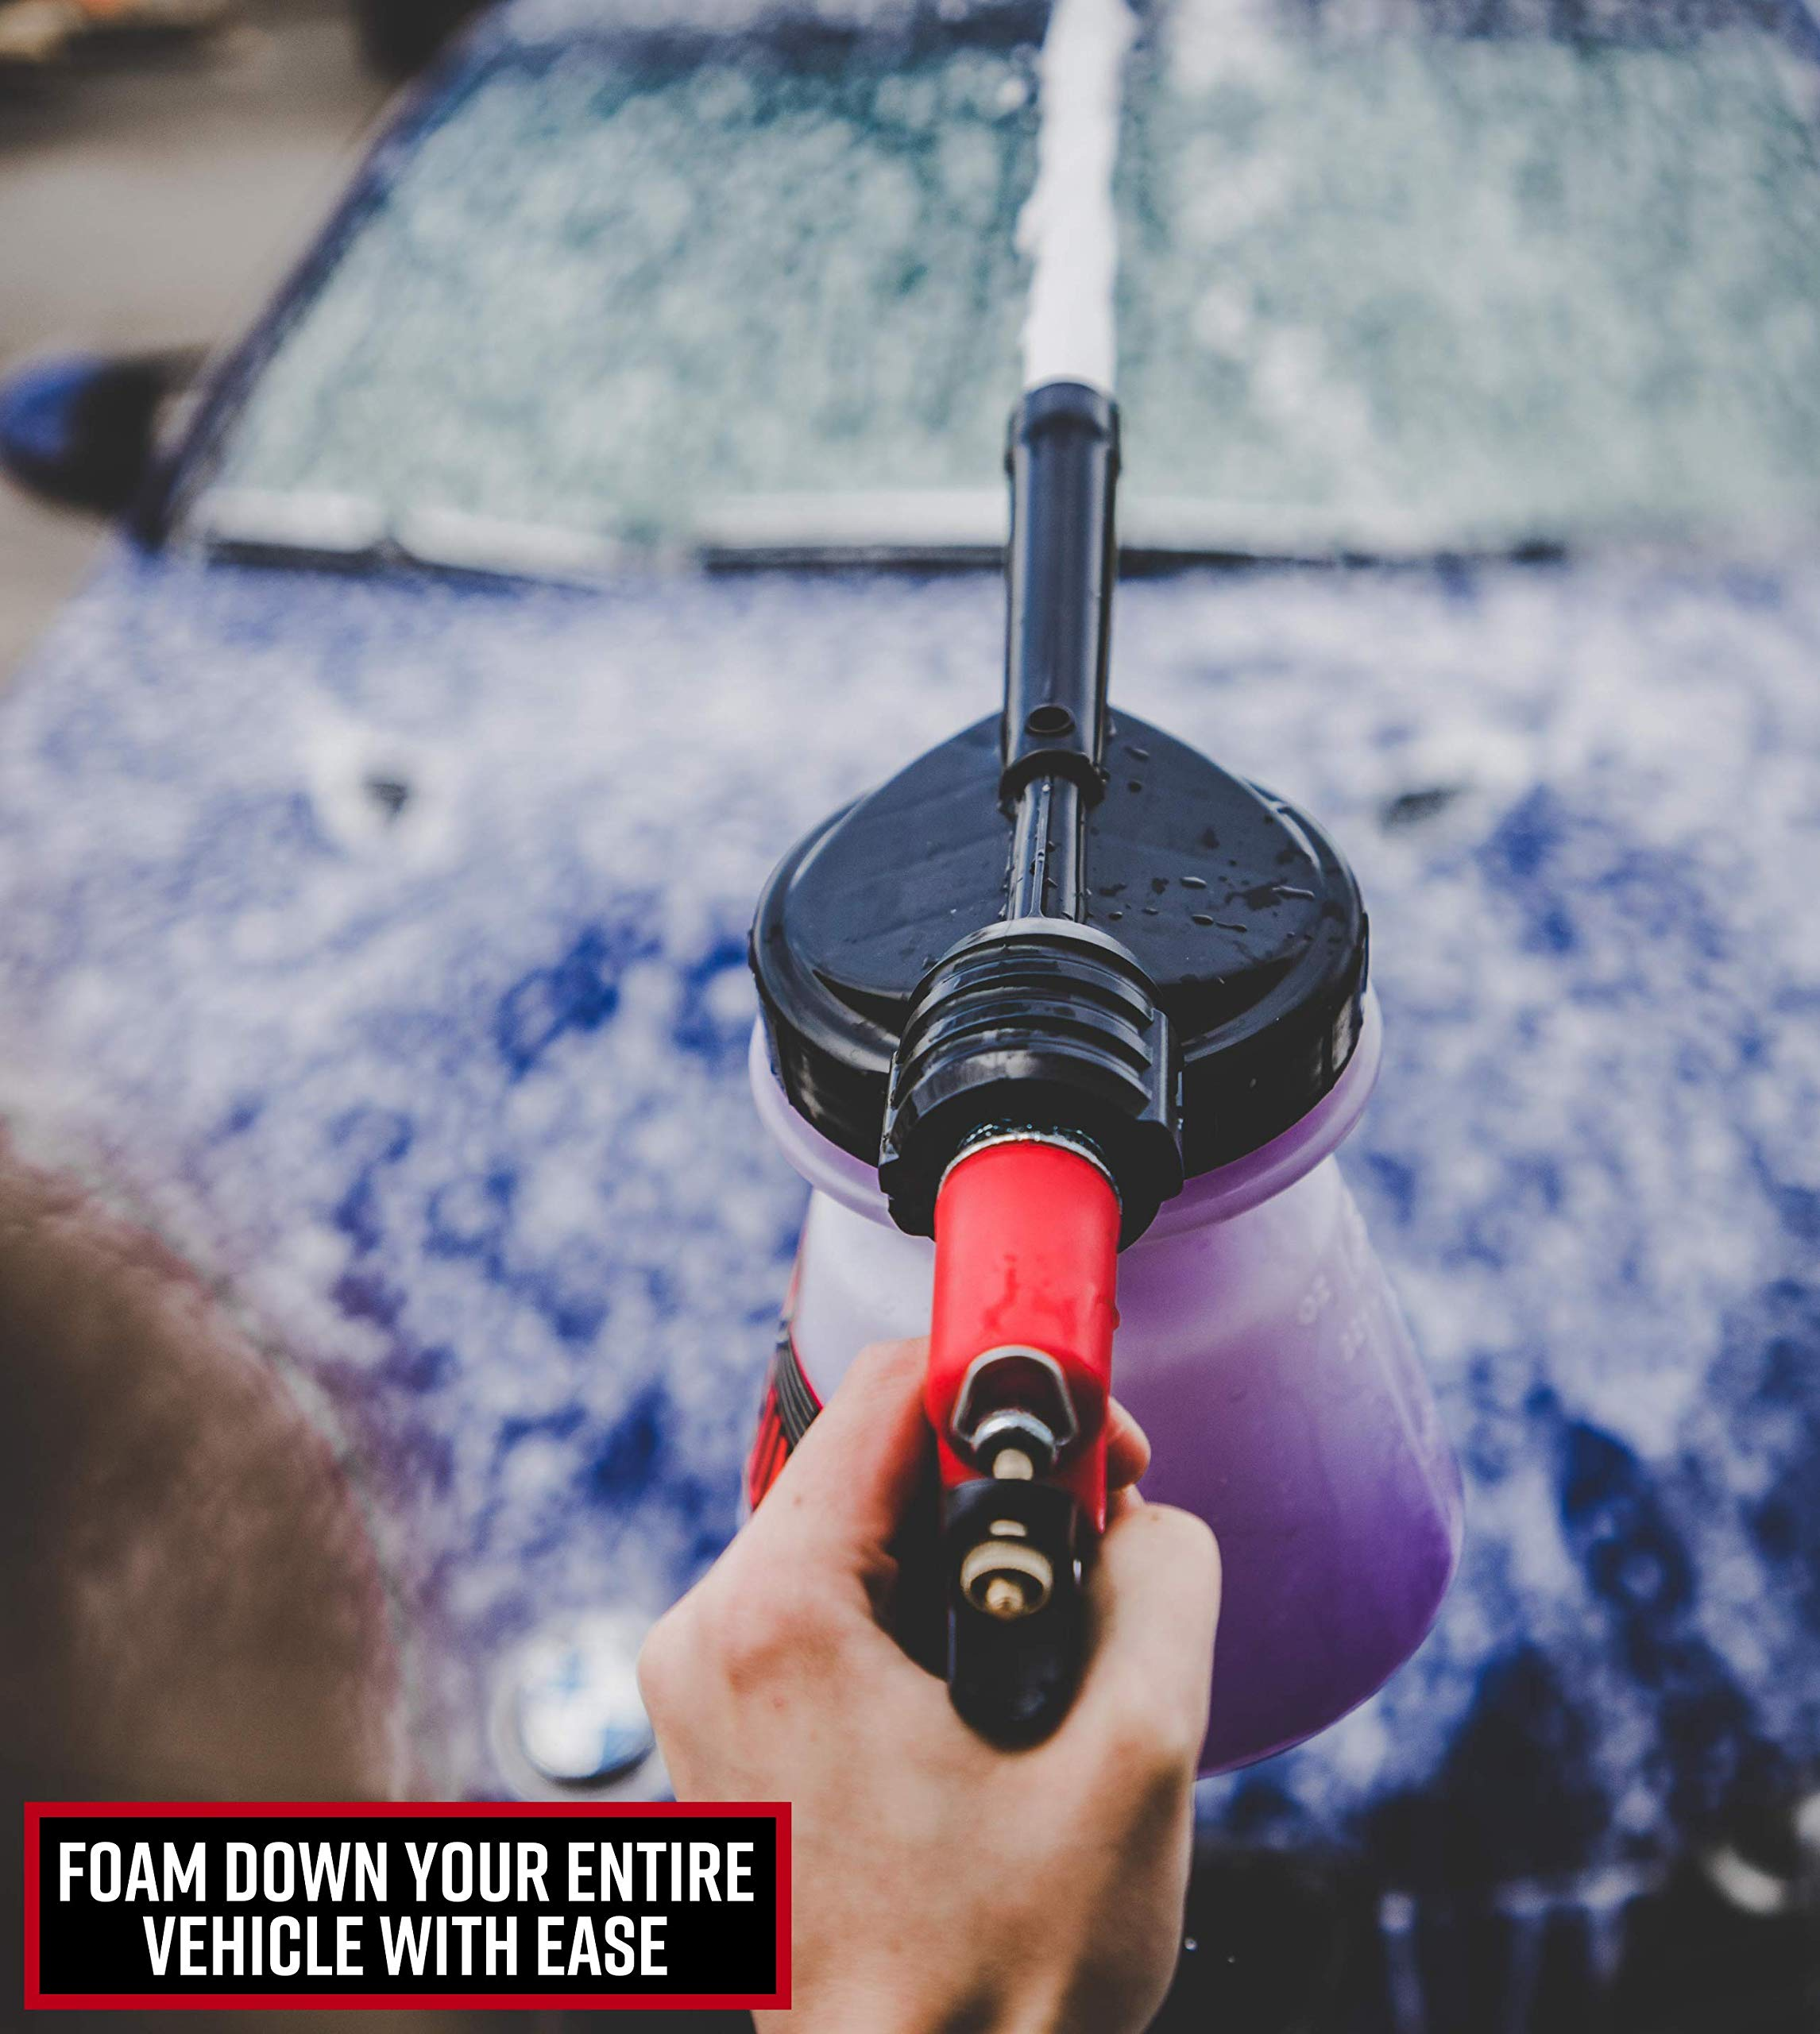 Adam's Foam Gun & Ultra Foam Gallon - Use with Any Car Wash Soap & Garden Hose for Thick Suds - Detailing Tool Does Not Require Pressure Washer & Won't Remove Wax Sealant by Adam's Polishes (Image #3)